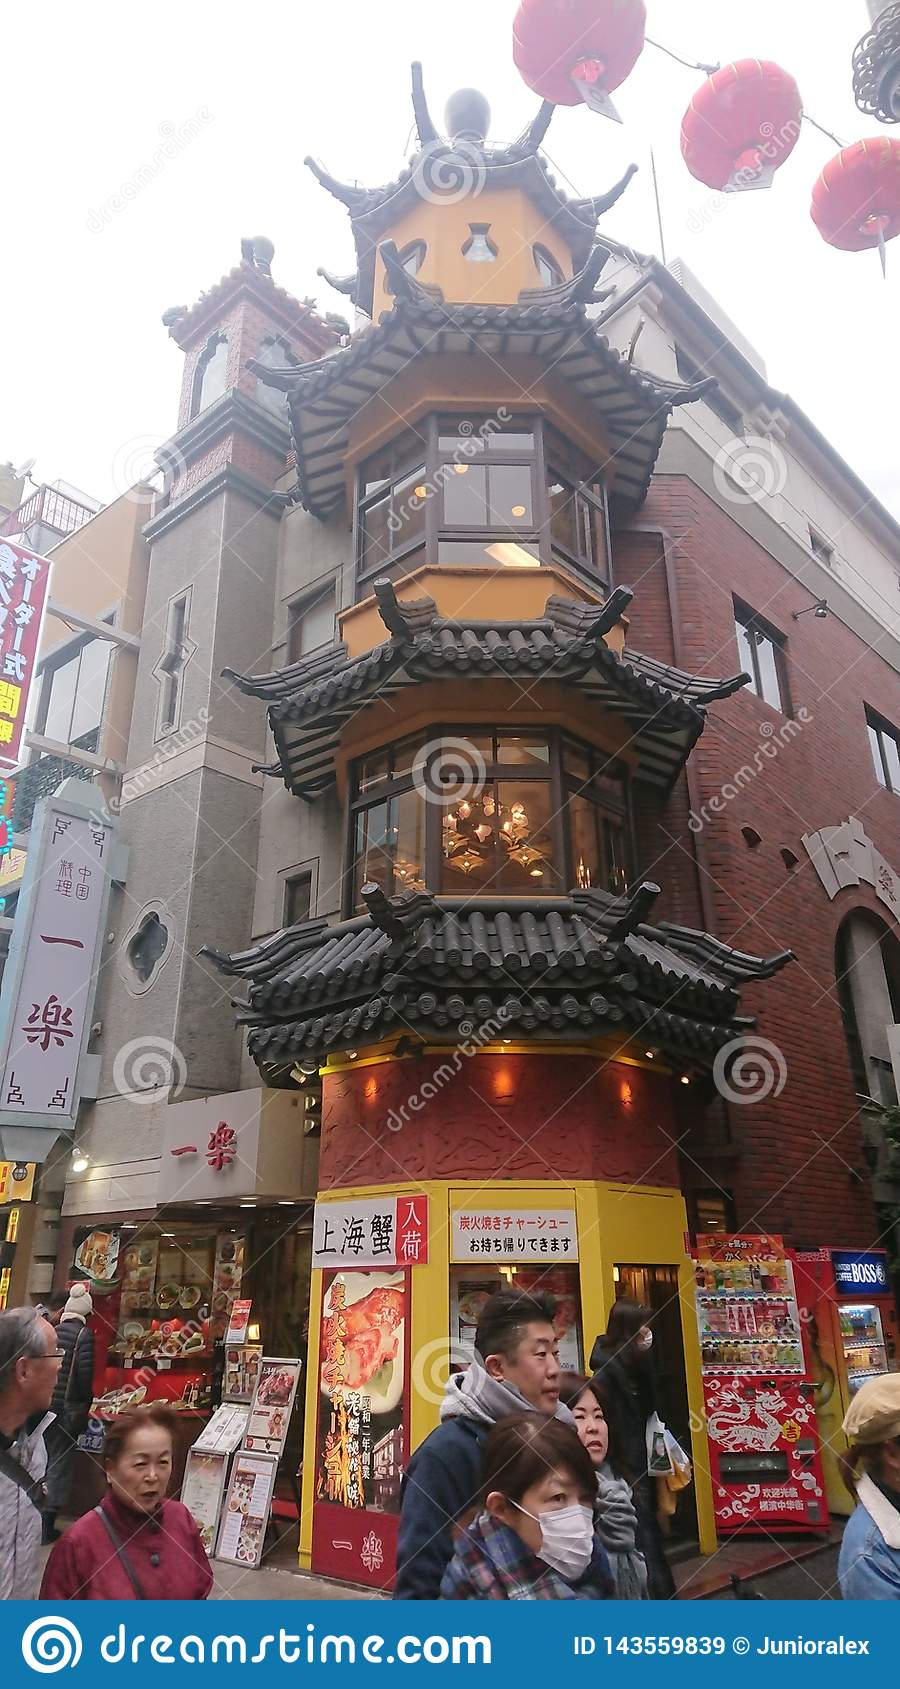 De stadsyokohama van China